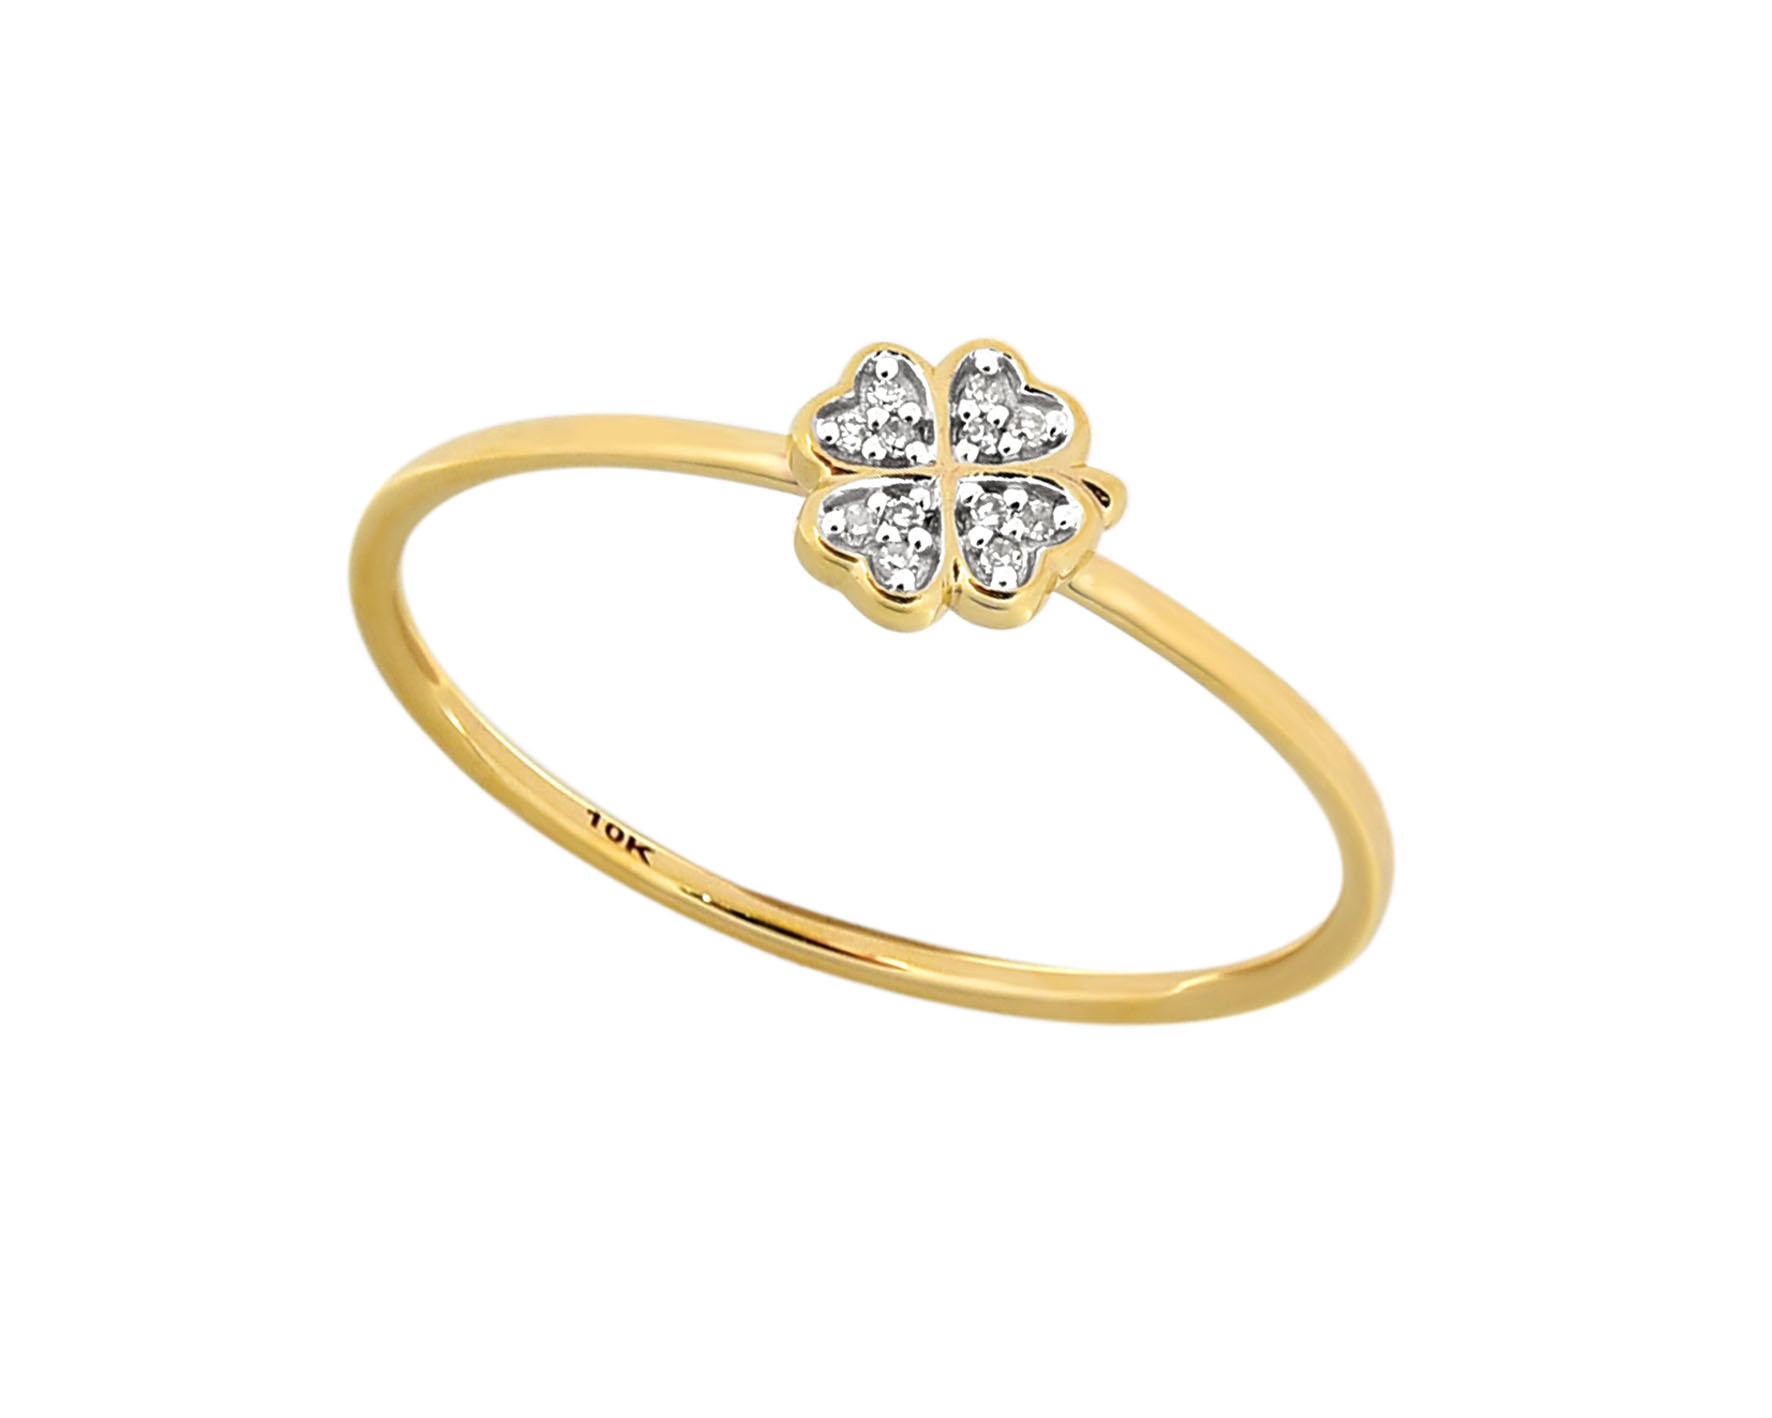 9ct Yellow Gold Diamond 4 Leaf Clover Ring with 12 Brilliant Diamonds